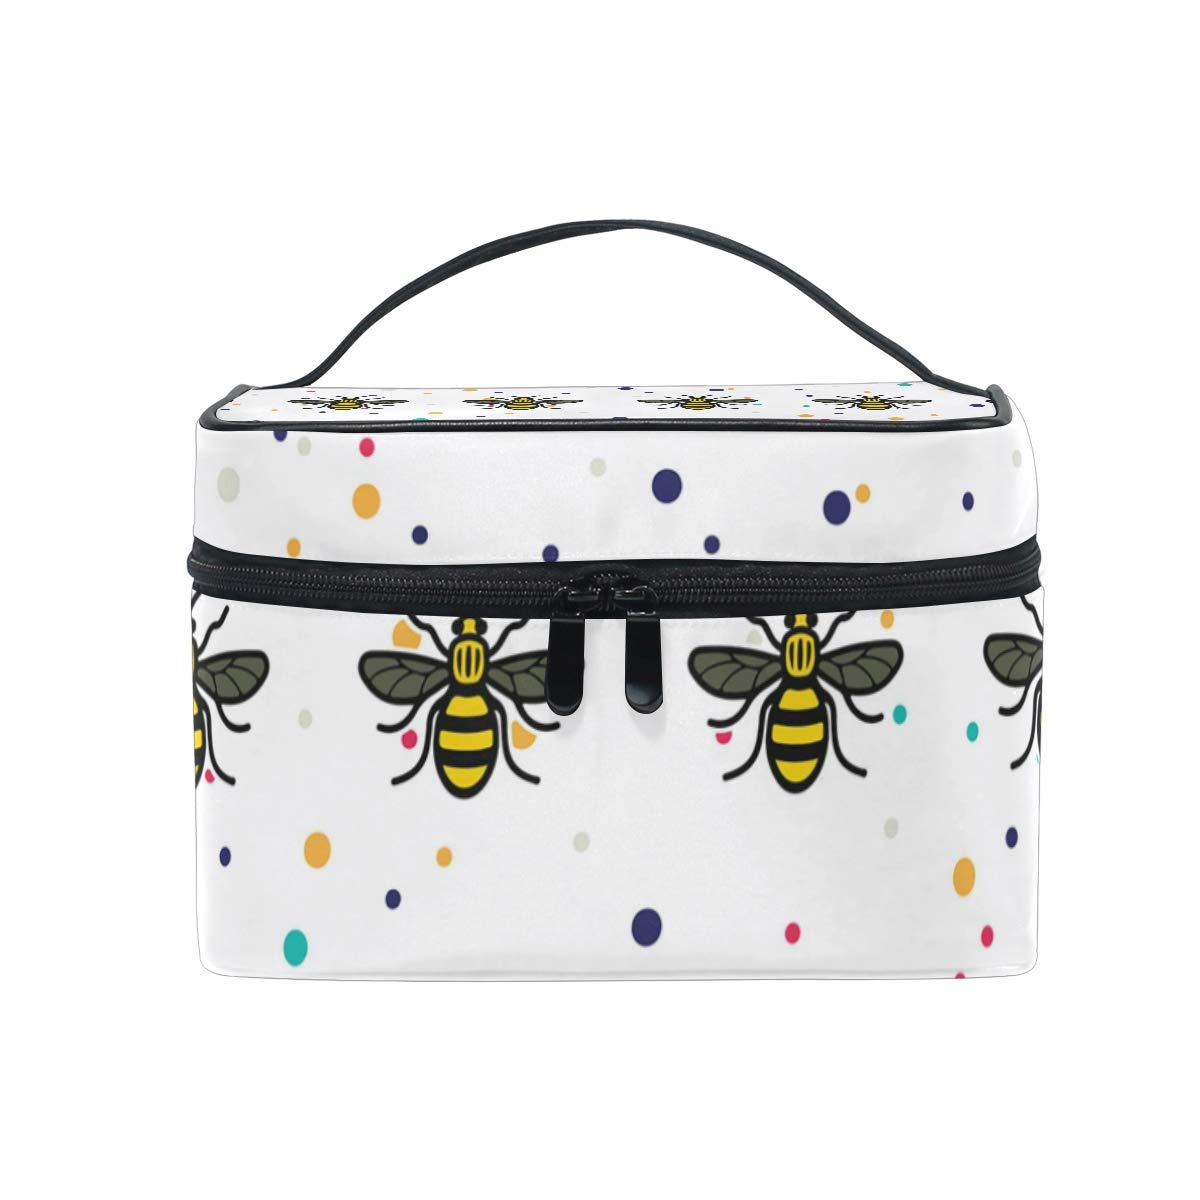 dab10dca67 Amazon.com   Manchester Bee Cosmetic Bags Organizer- Travel Makeup Pouch  Ladies Toiletry Train Case for Women Girls